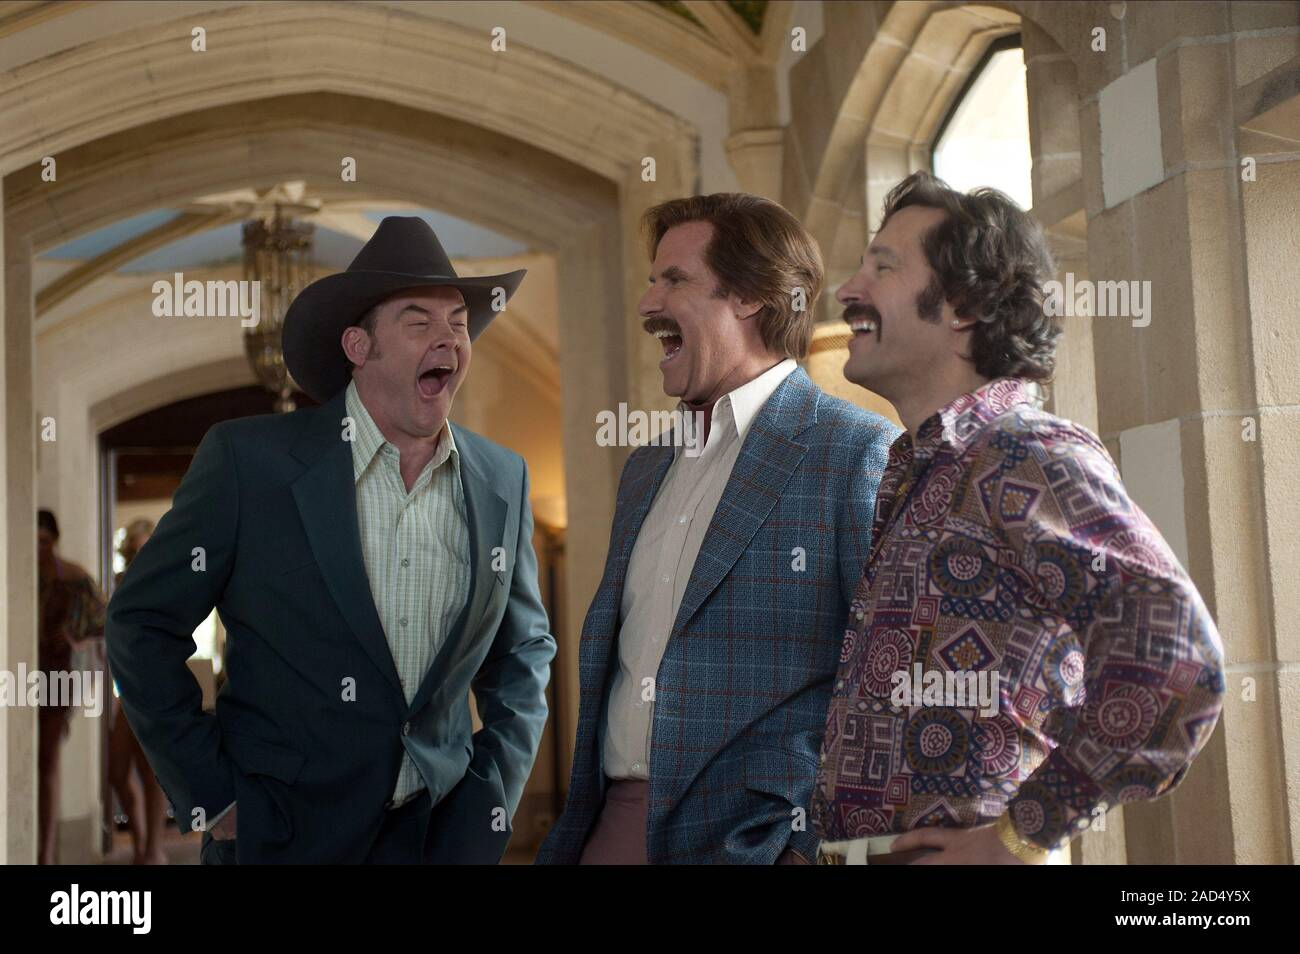 David Koechner Will Ferrell Paul Rudd Anchorman 2 The Legend Continues 2013 Stock Photo Alamy